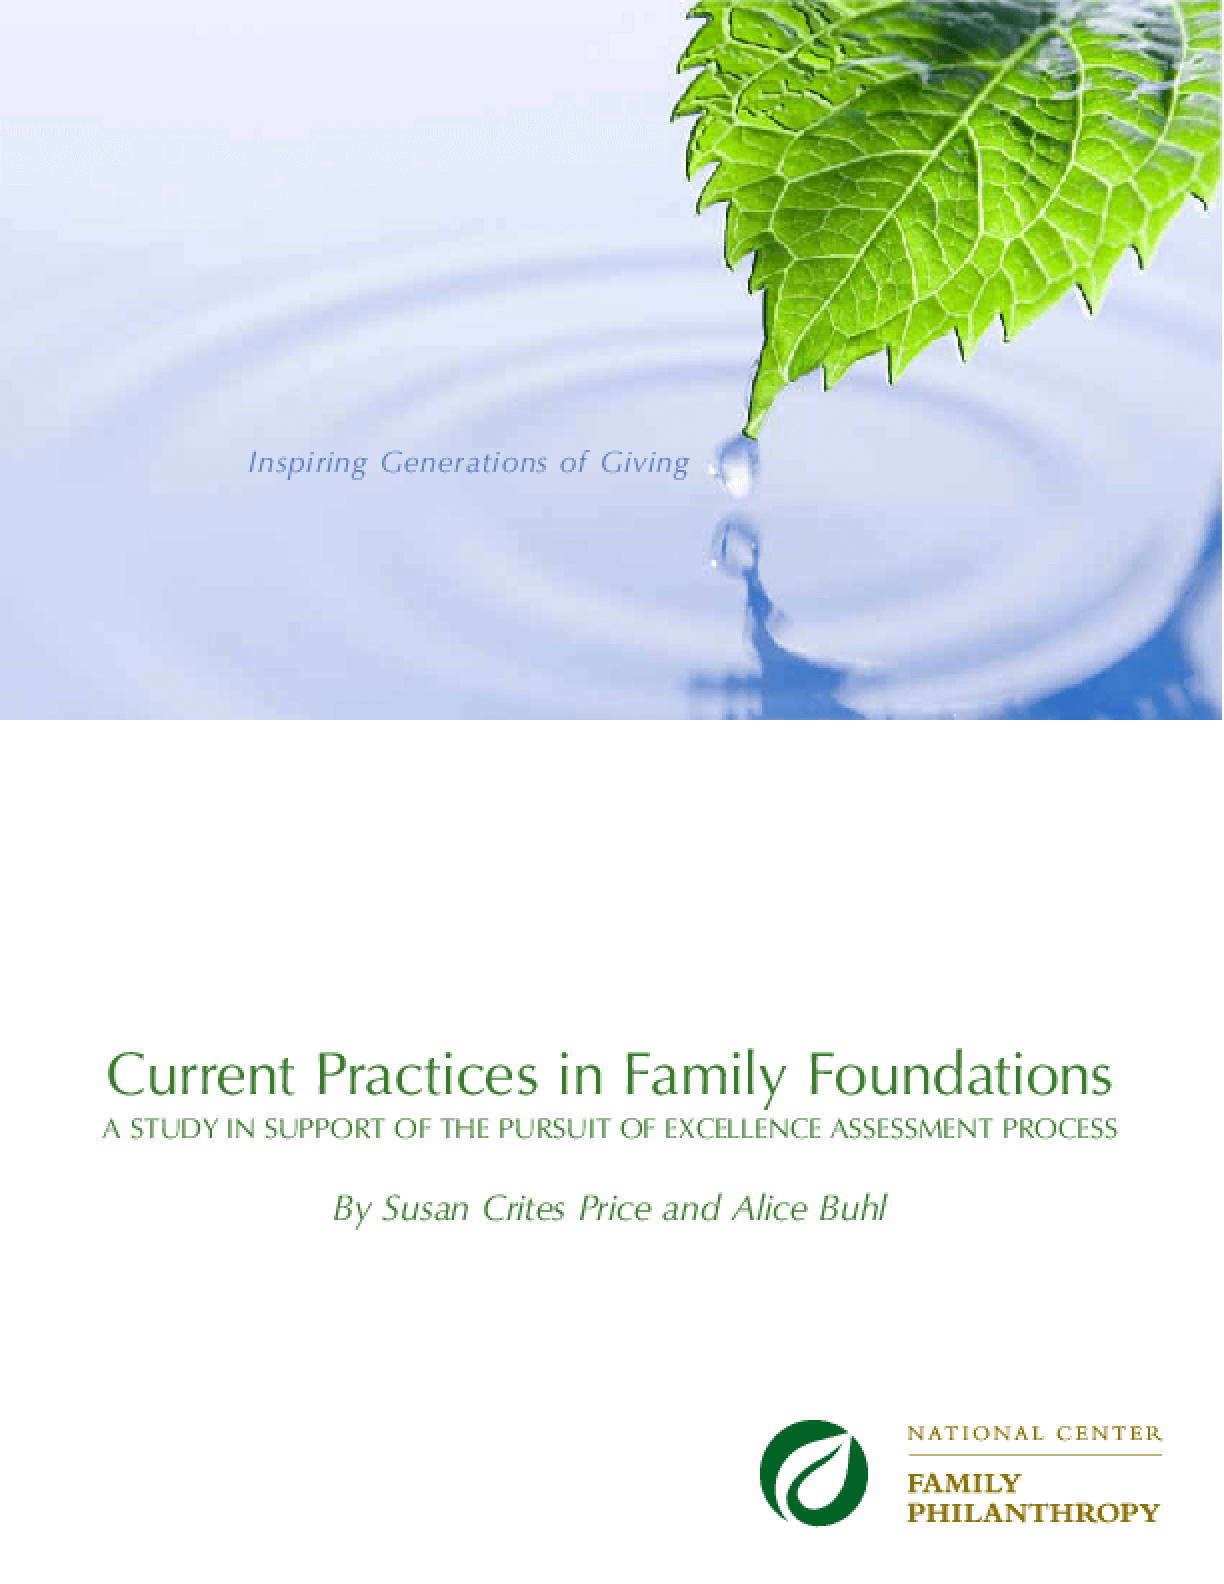 Current Practices in Family Foundations